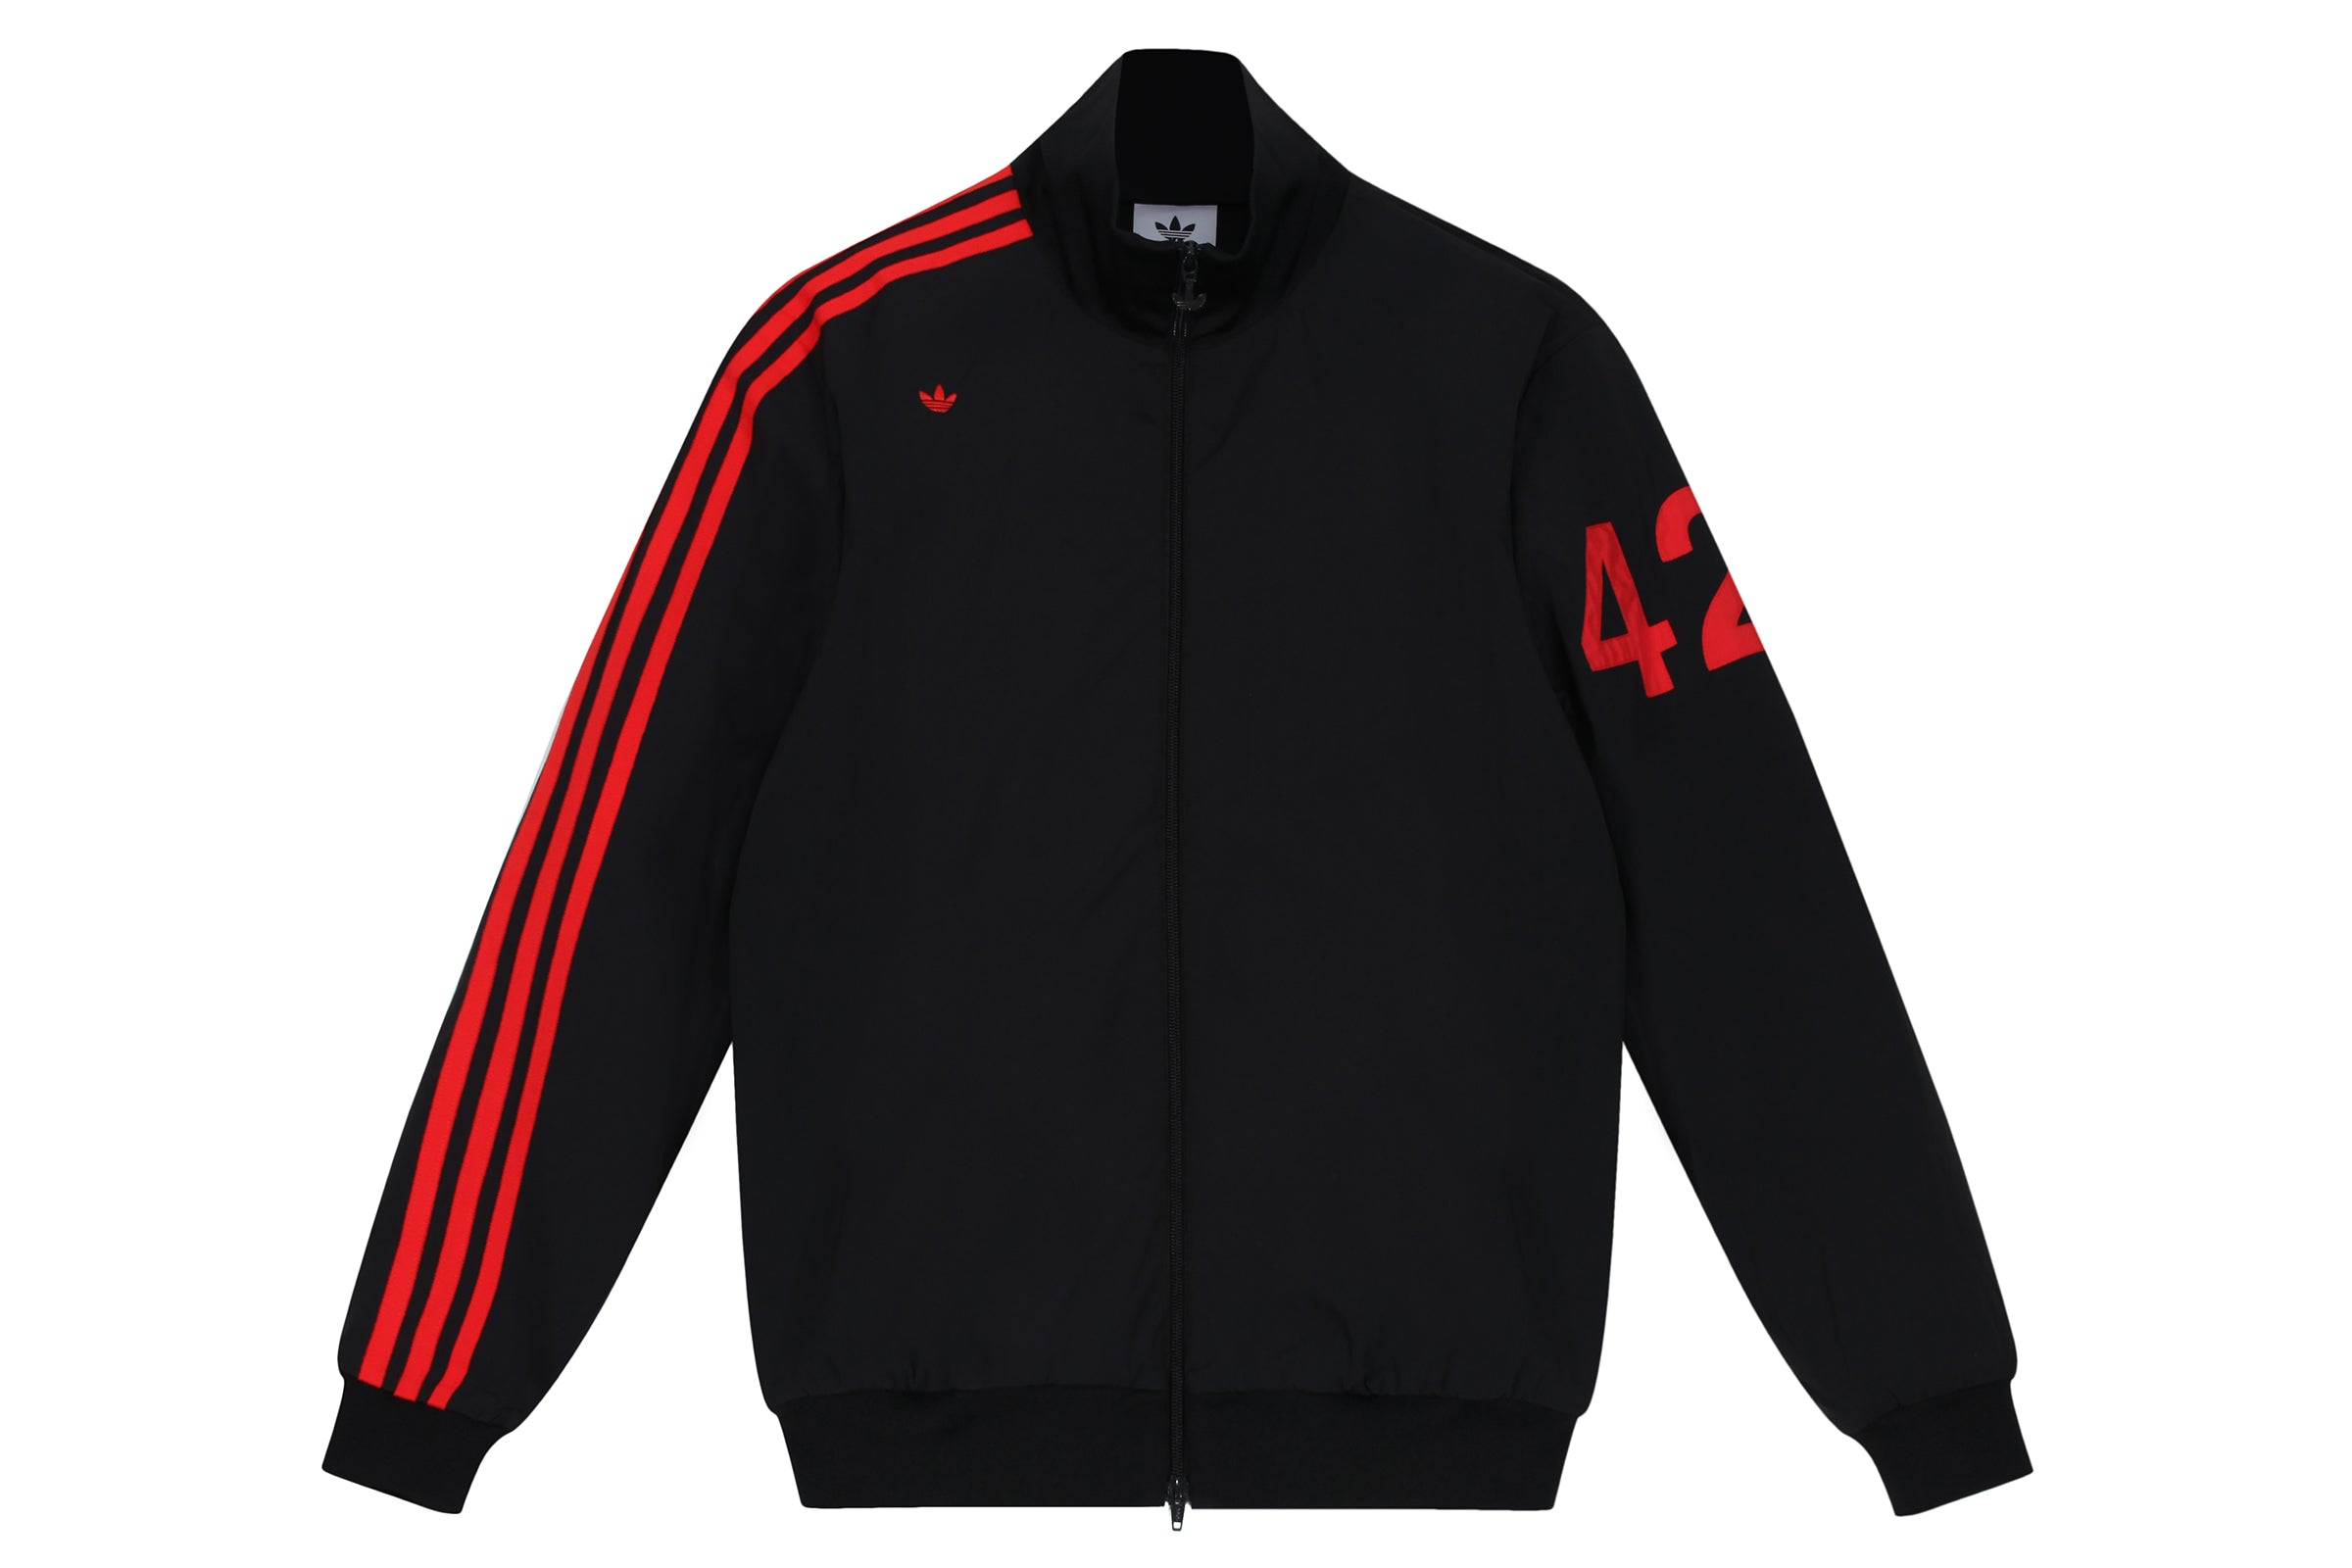 Adidas Track Top x 424